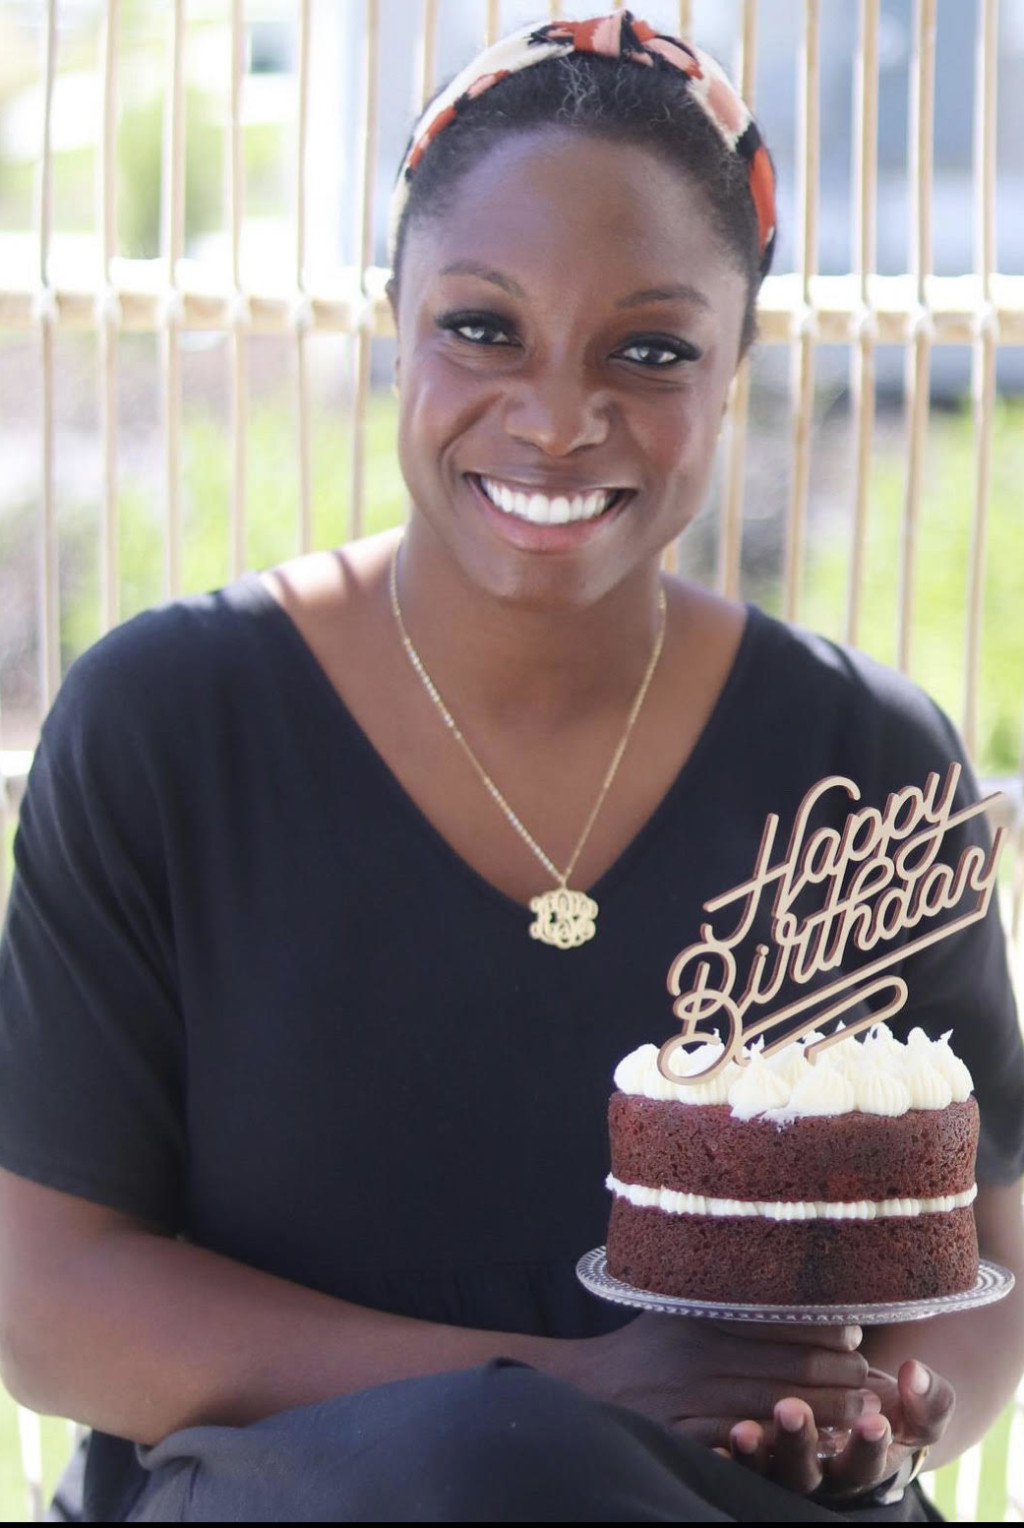 Sheryl Garner holds a red velvet cake and smiles at the camera. She's wearing a black top and a gold necklace.